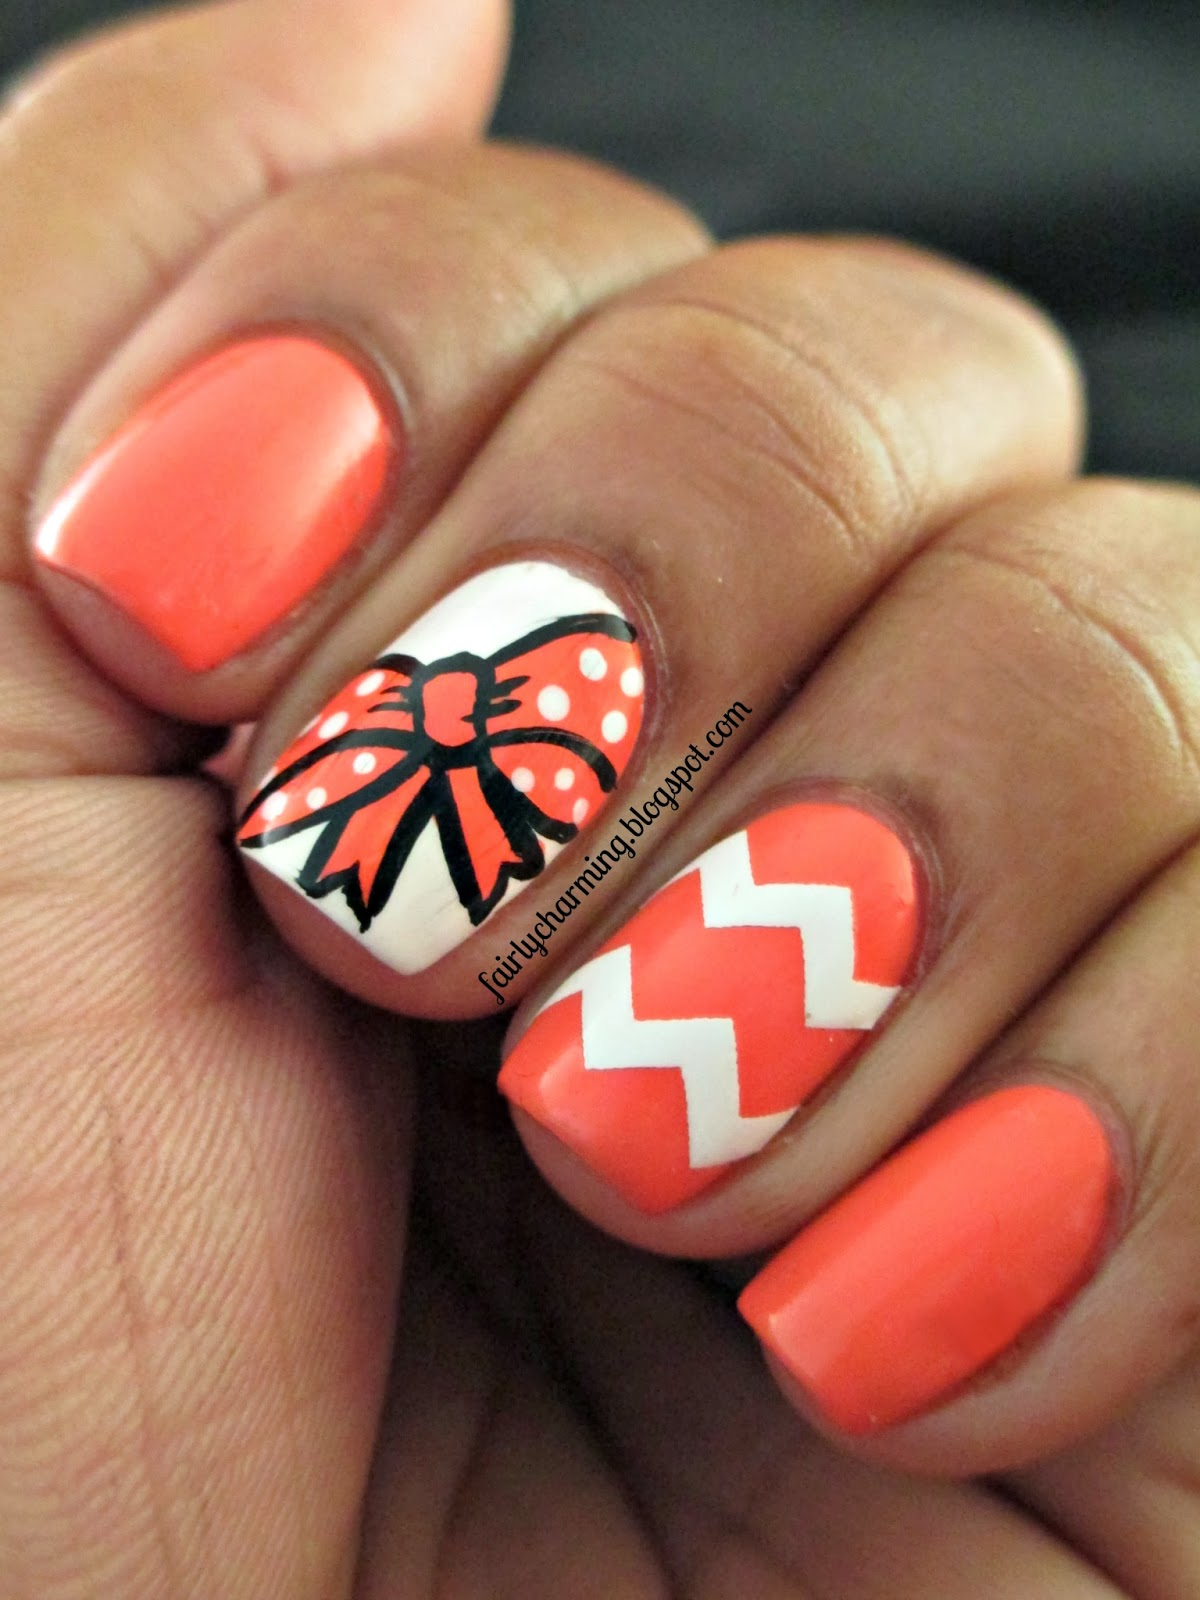 Nail Designs With Bows And Diamonds: Nails designs with bows and ...